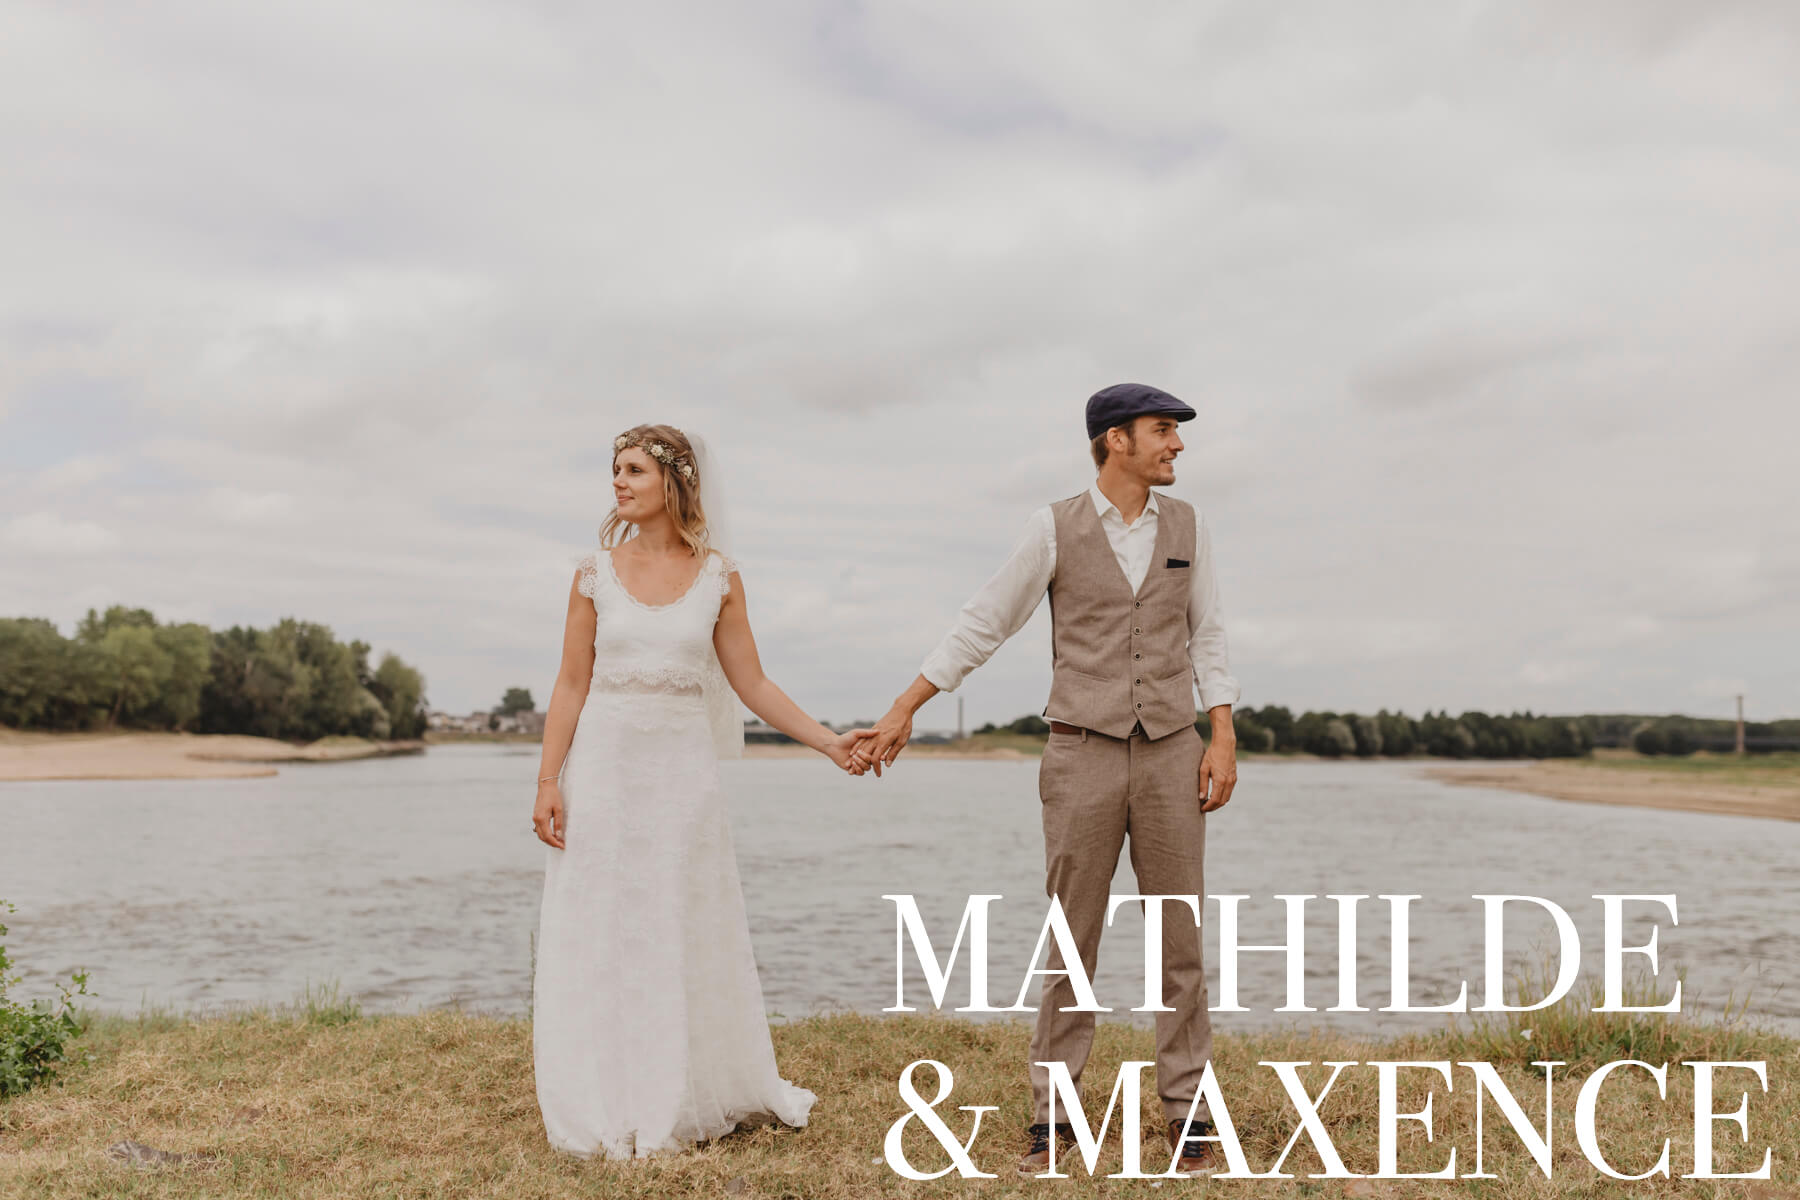 mariage-mathilde-maxence-angers-jordane-chaillou-couv-1